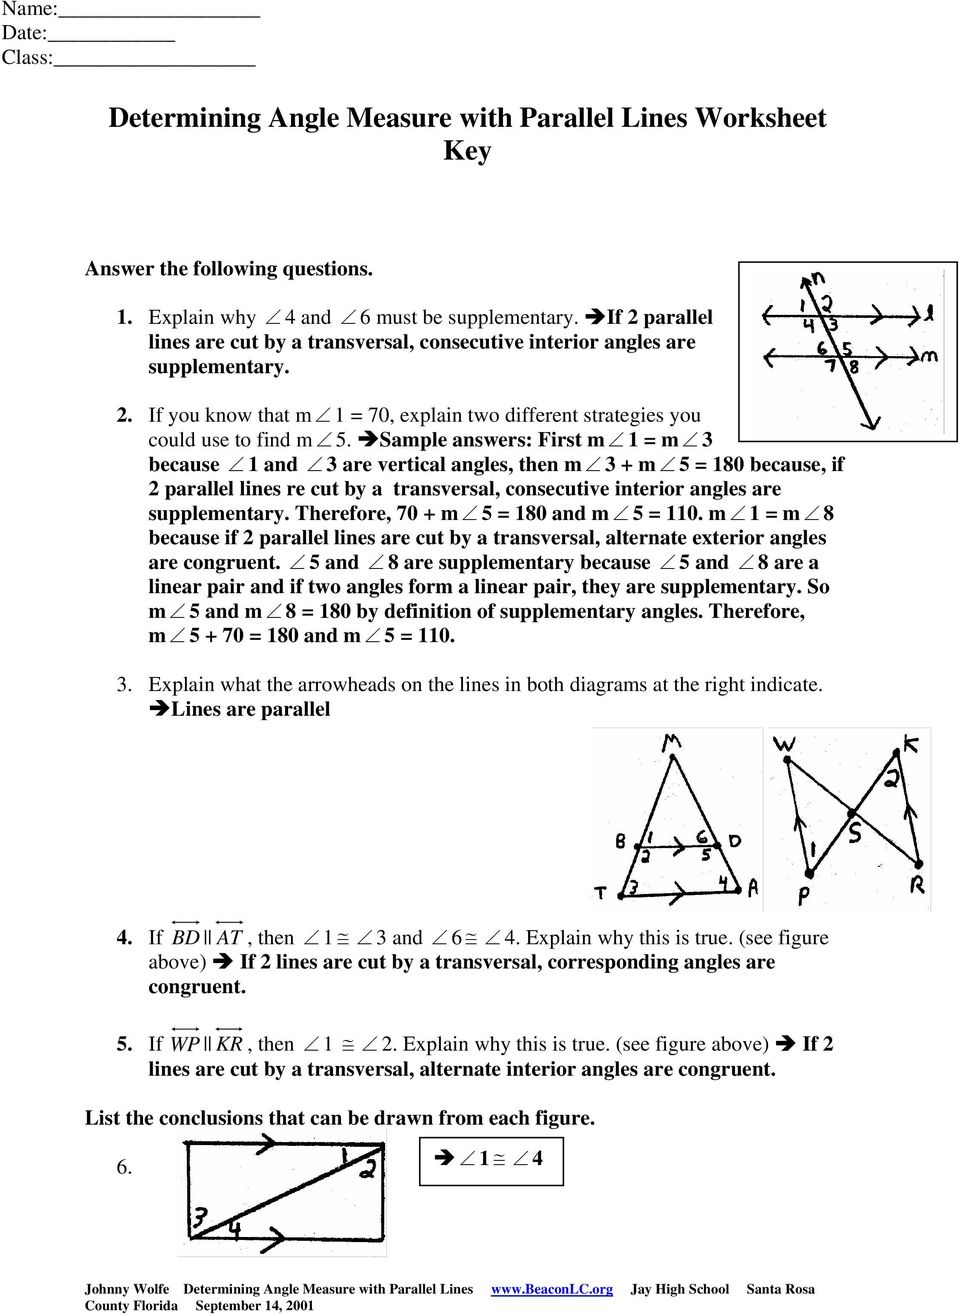 Determining Angle Measure With Parallel Lines Examples Pdf